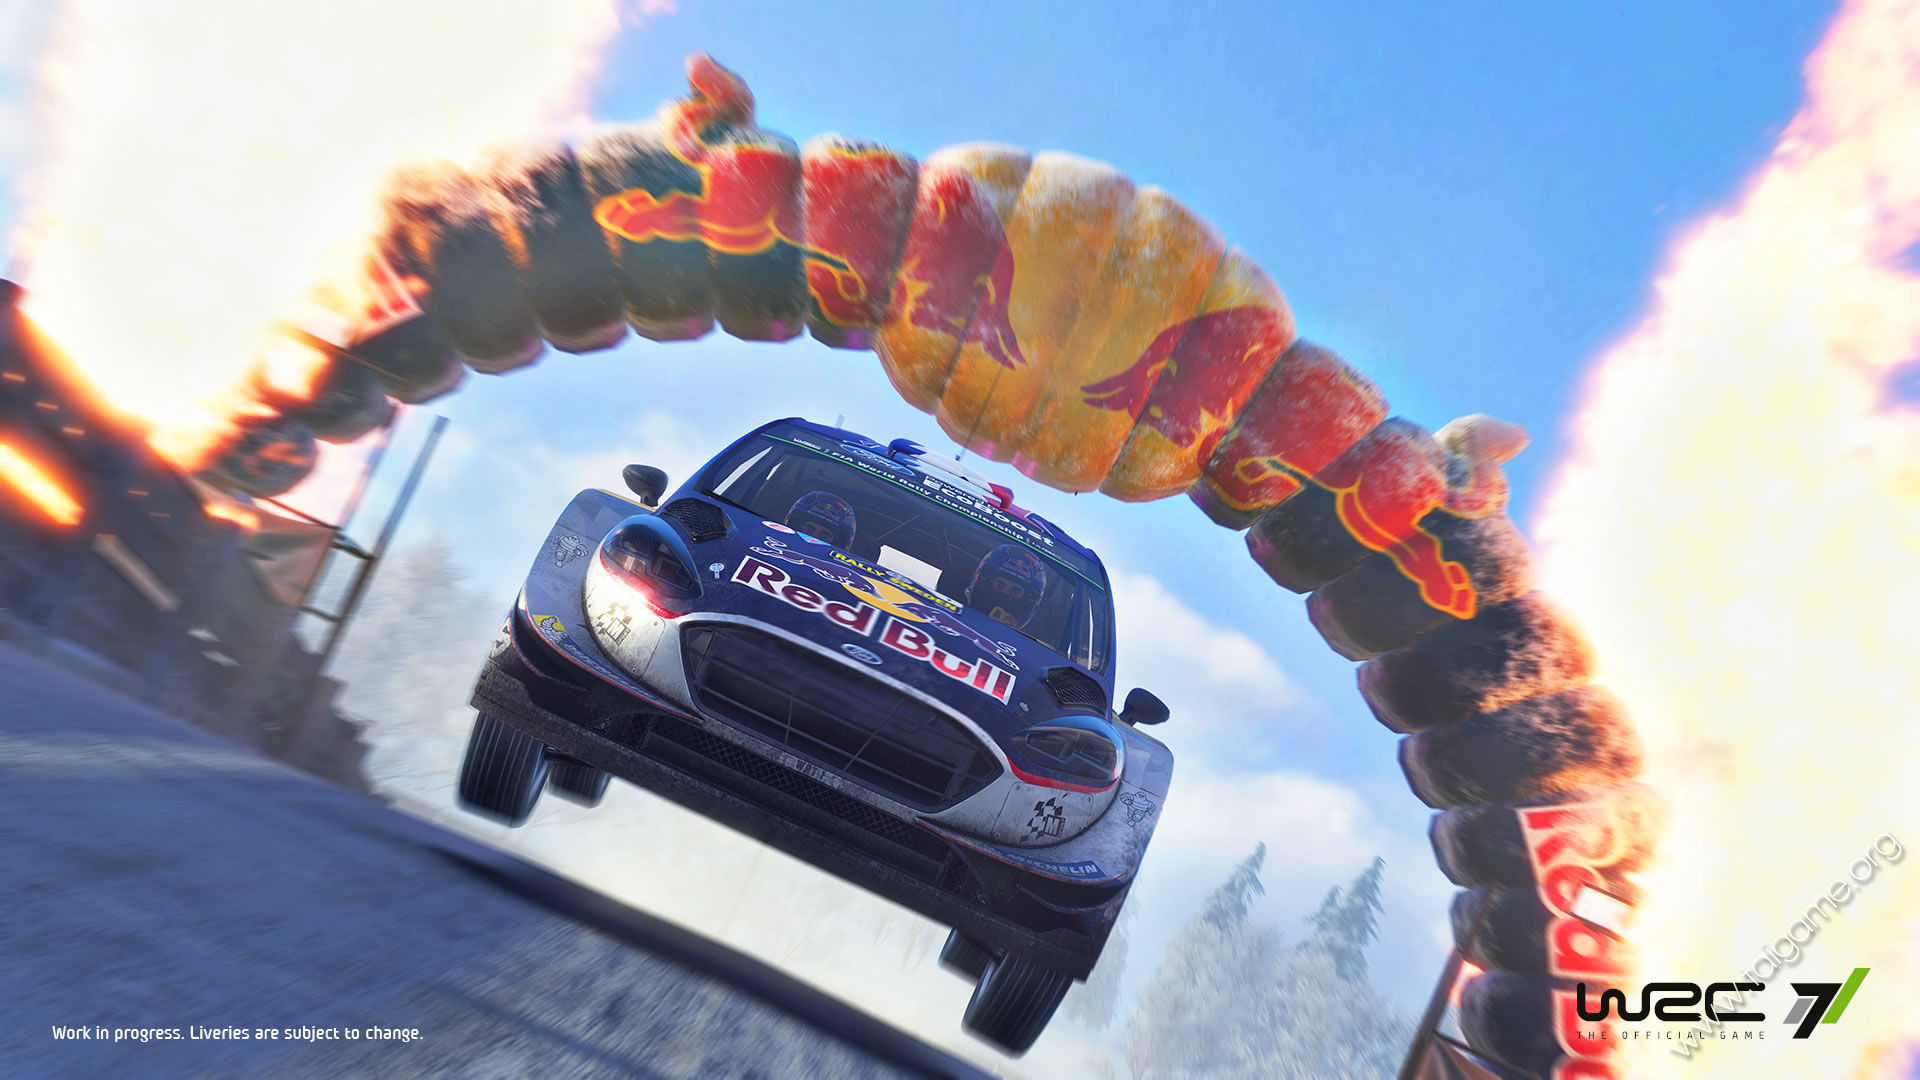 wrc 7 fia world rally championship download free full games racing games. Black Bedroom Furniture Sets. Home Design Ideas